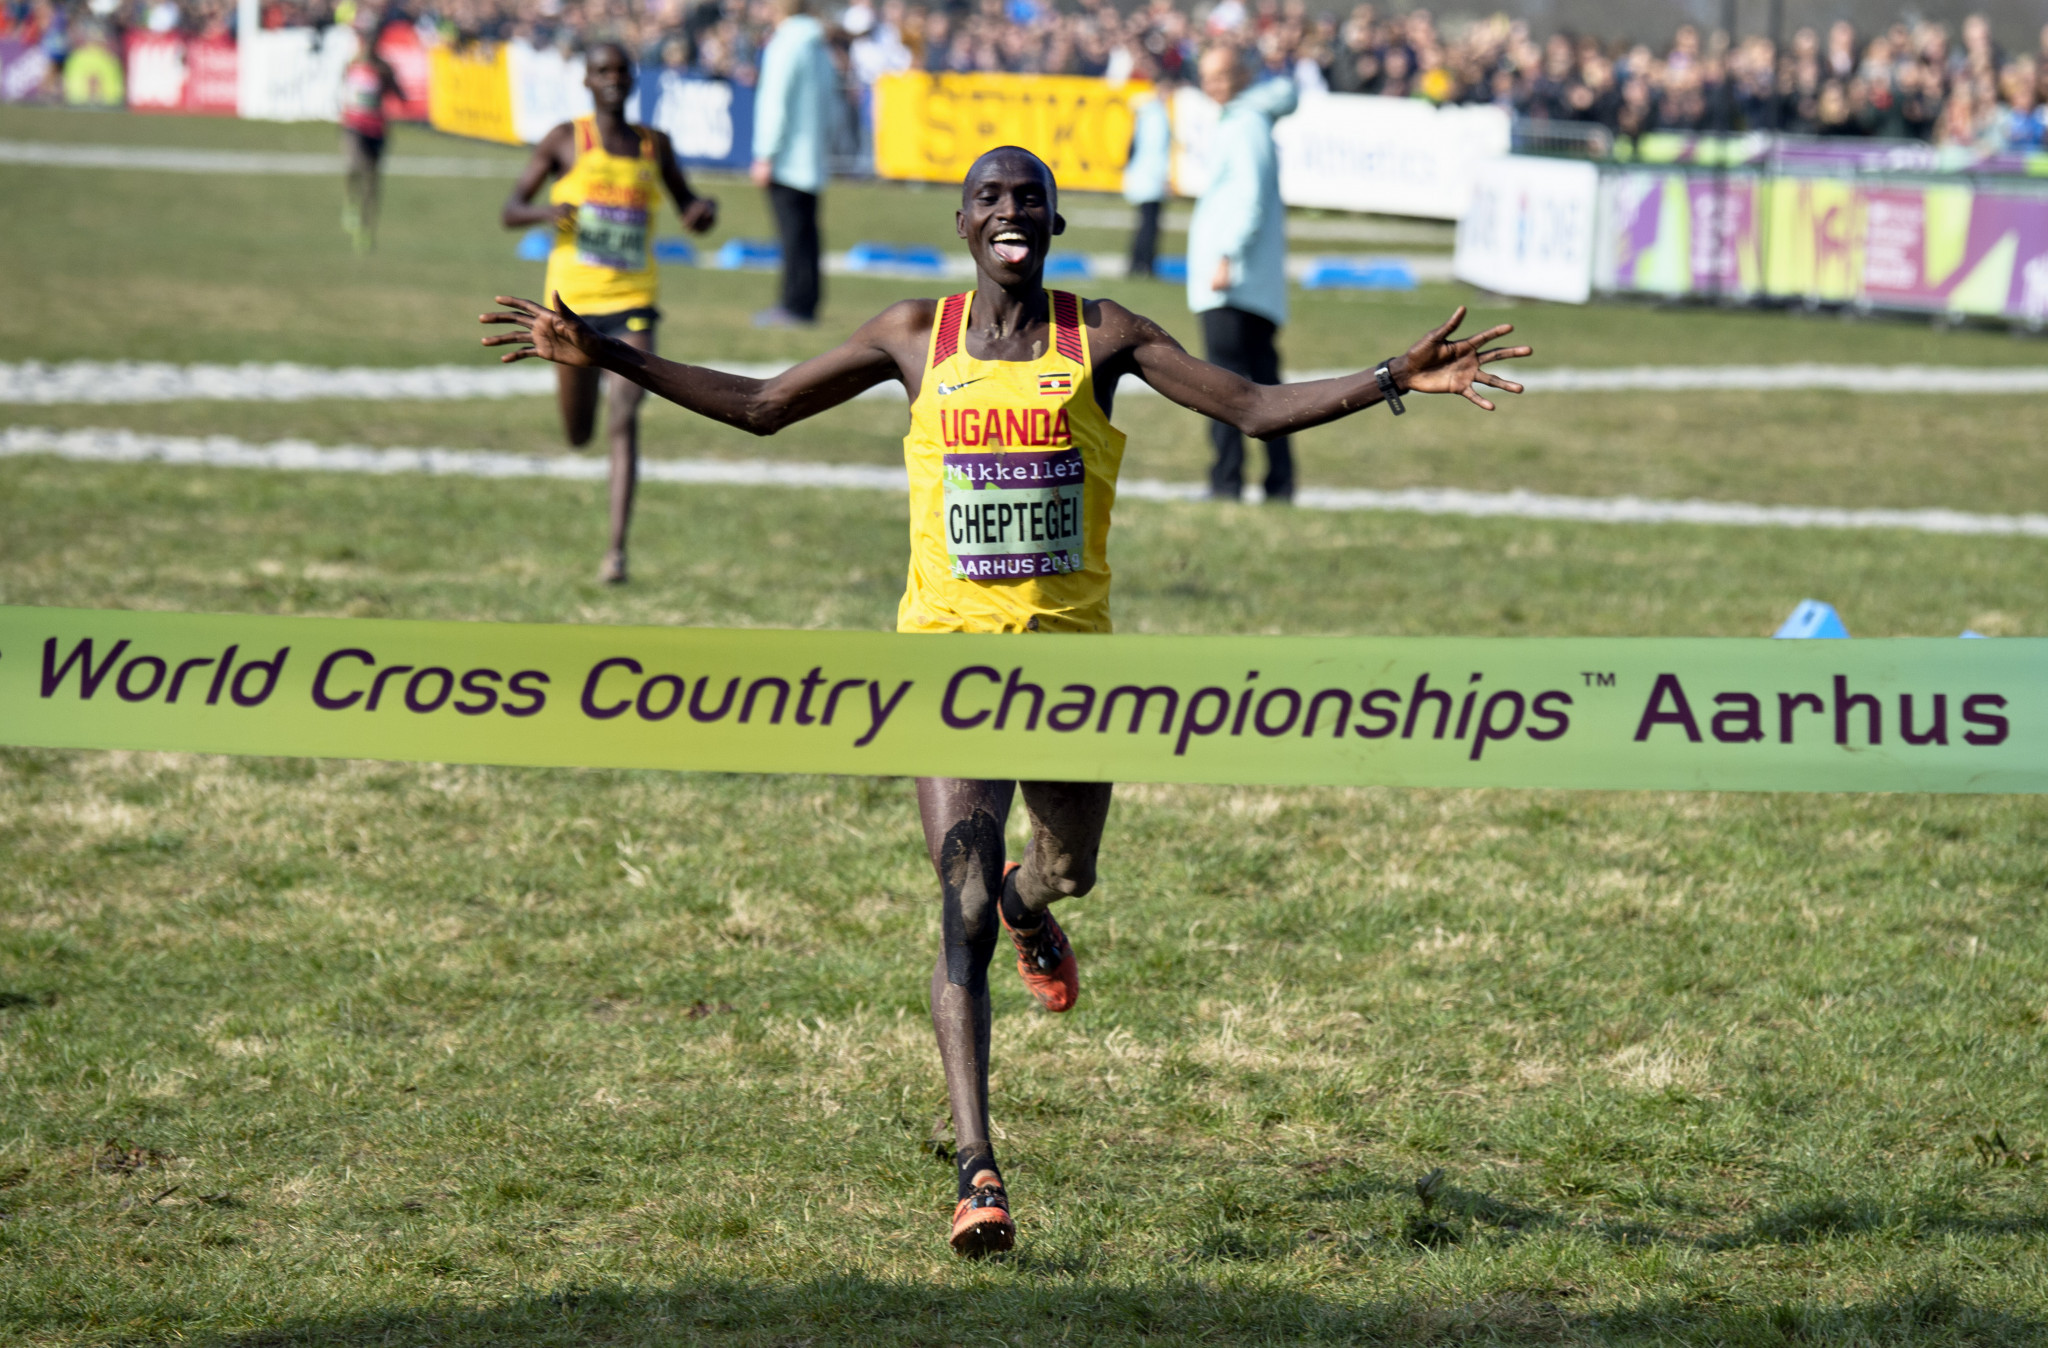 Cheptegei runs to redemption by winning men's elite title at IAAF World Cross-Country Championships